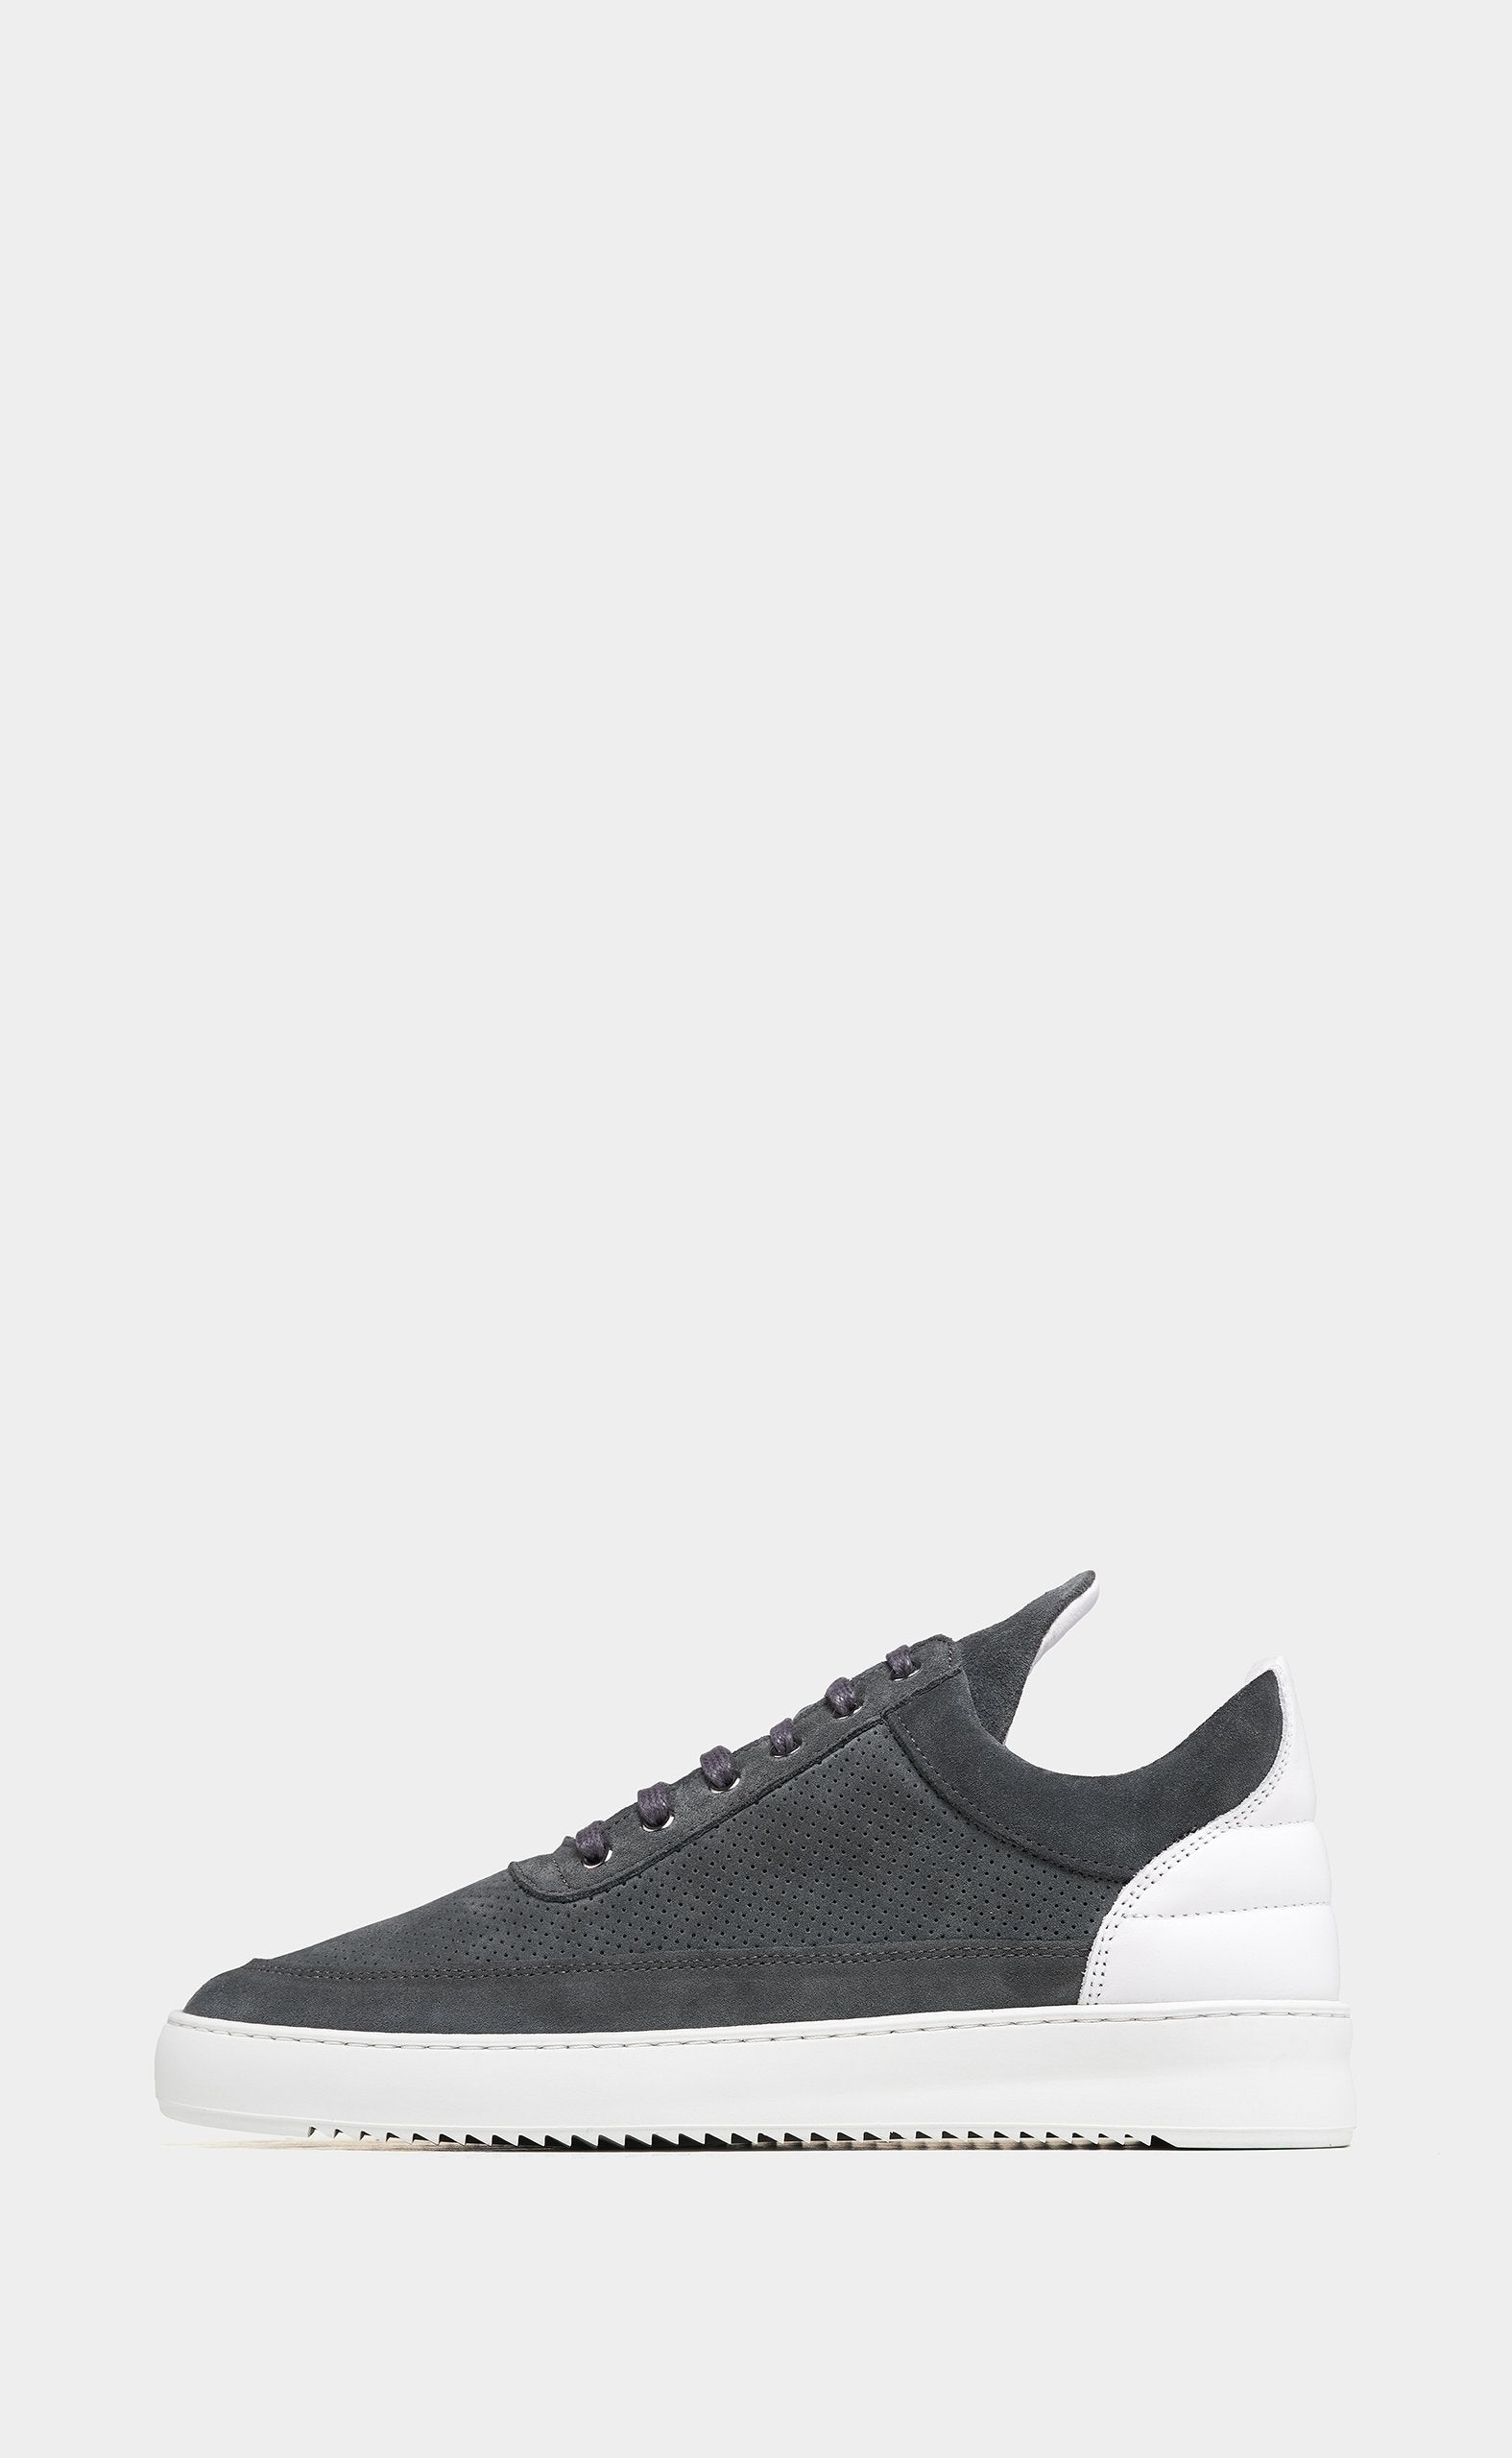 Low Top Ripple Perforated Dark Grey